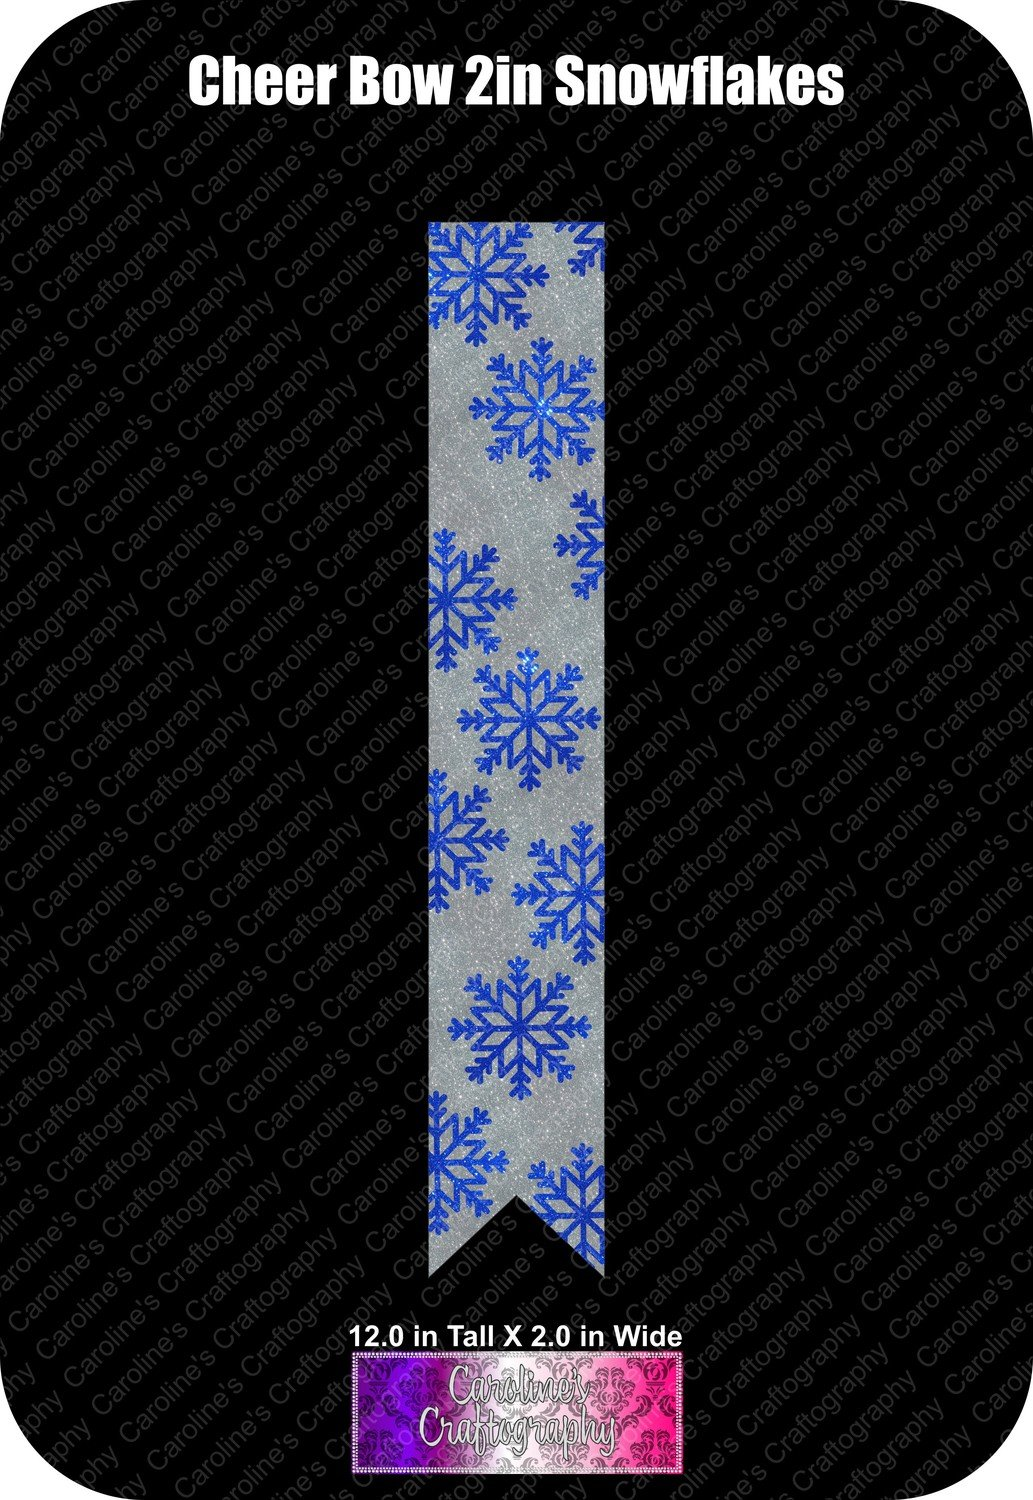 Snowflakes 2in Cheer Bow Vinyl